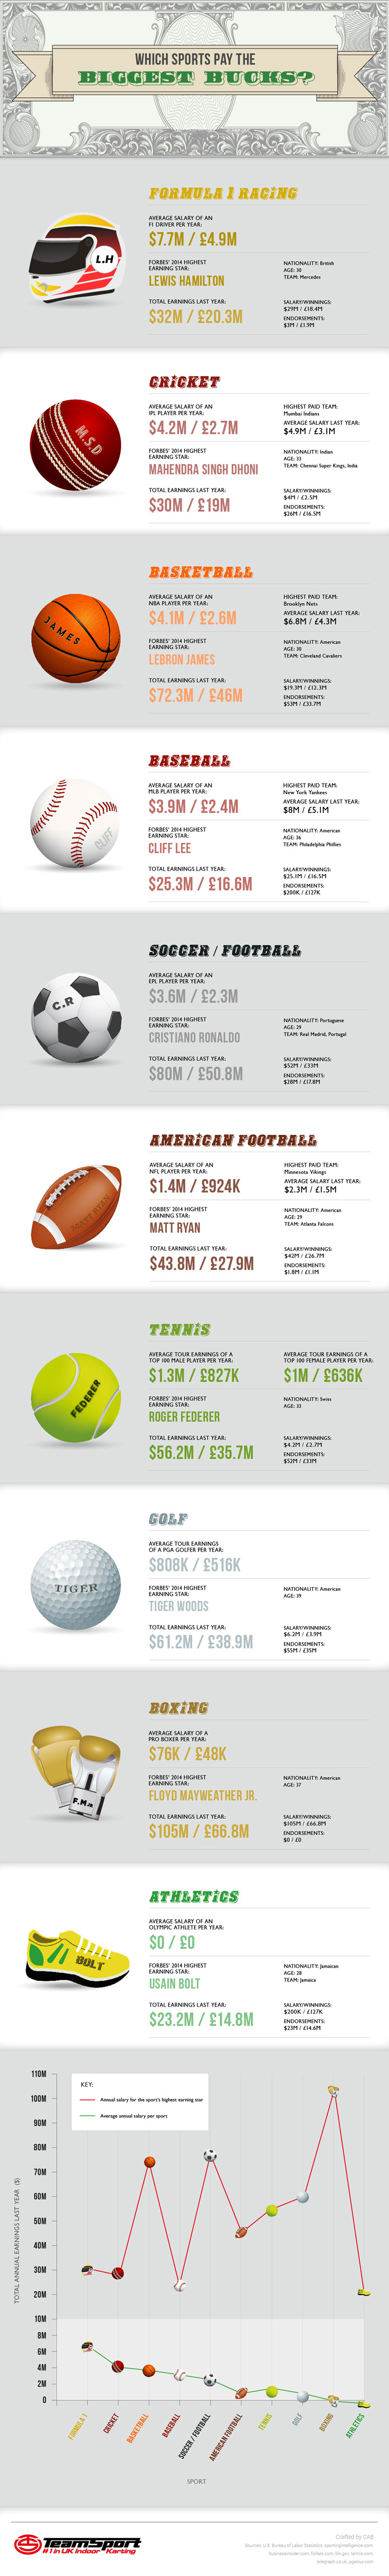 Which sports pay the biggest bucks?